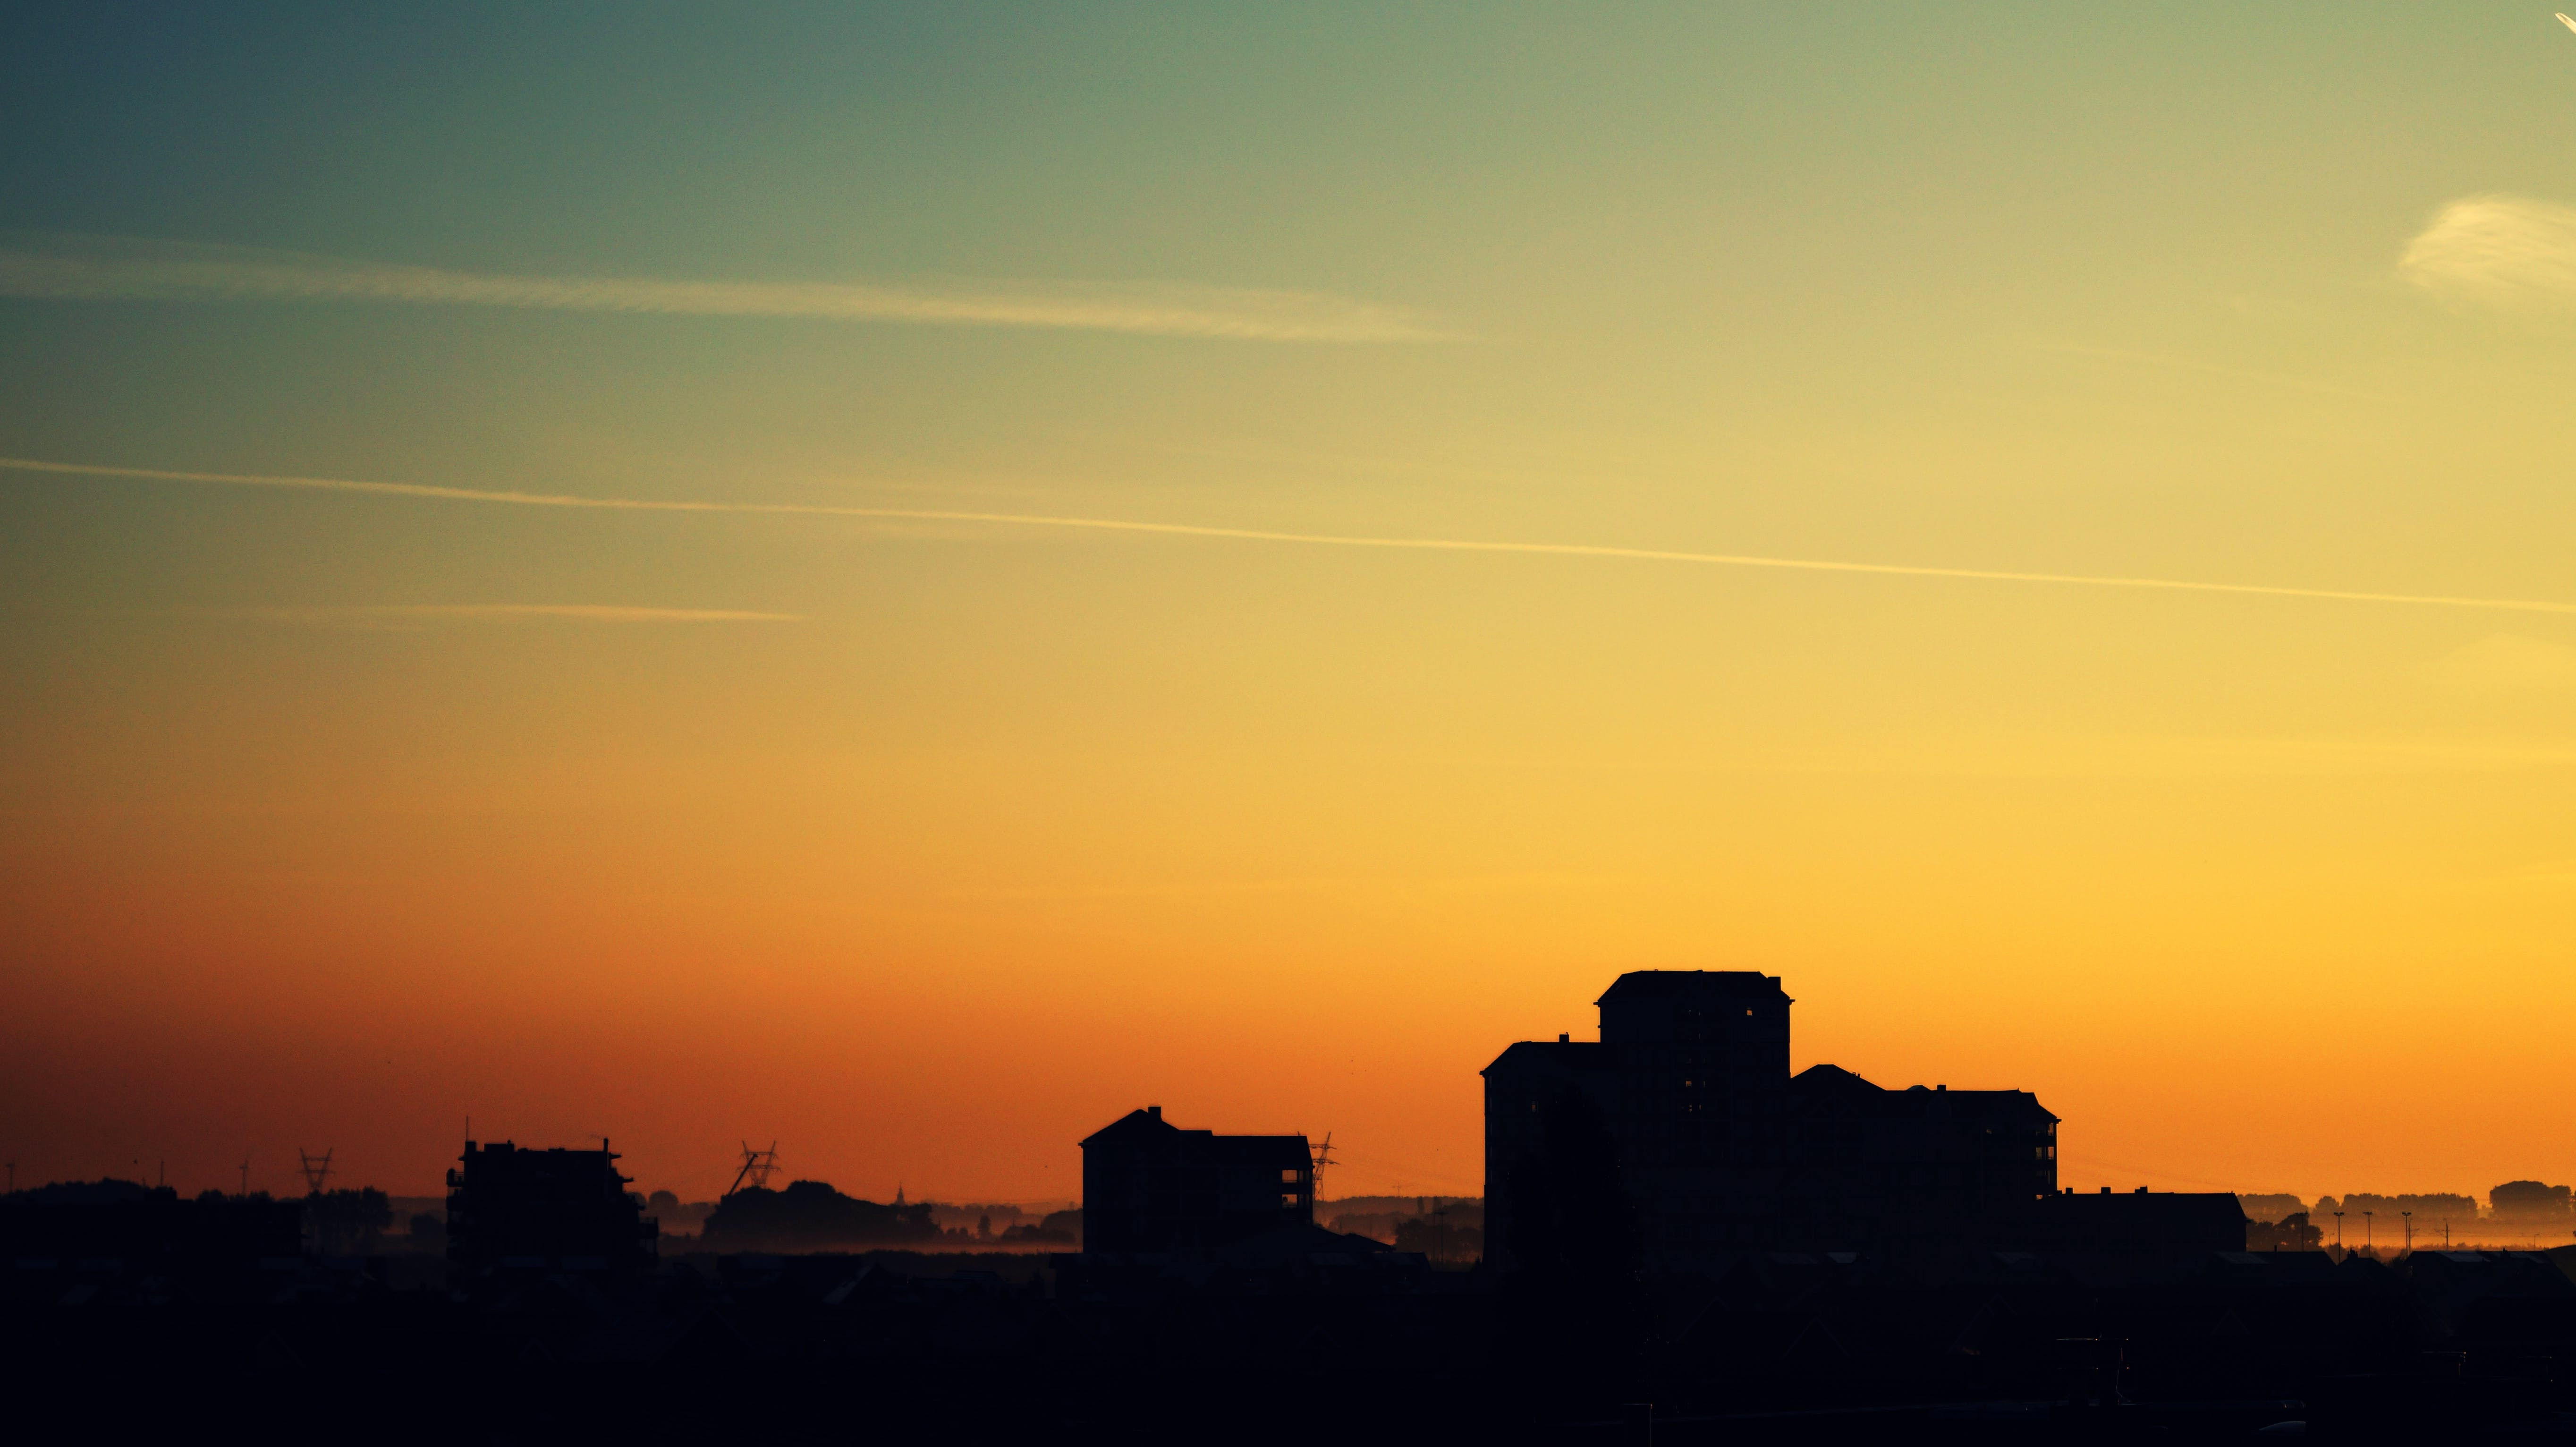 Silhouette of High Rise Building Under Golden Sun